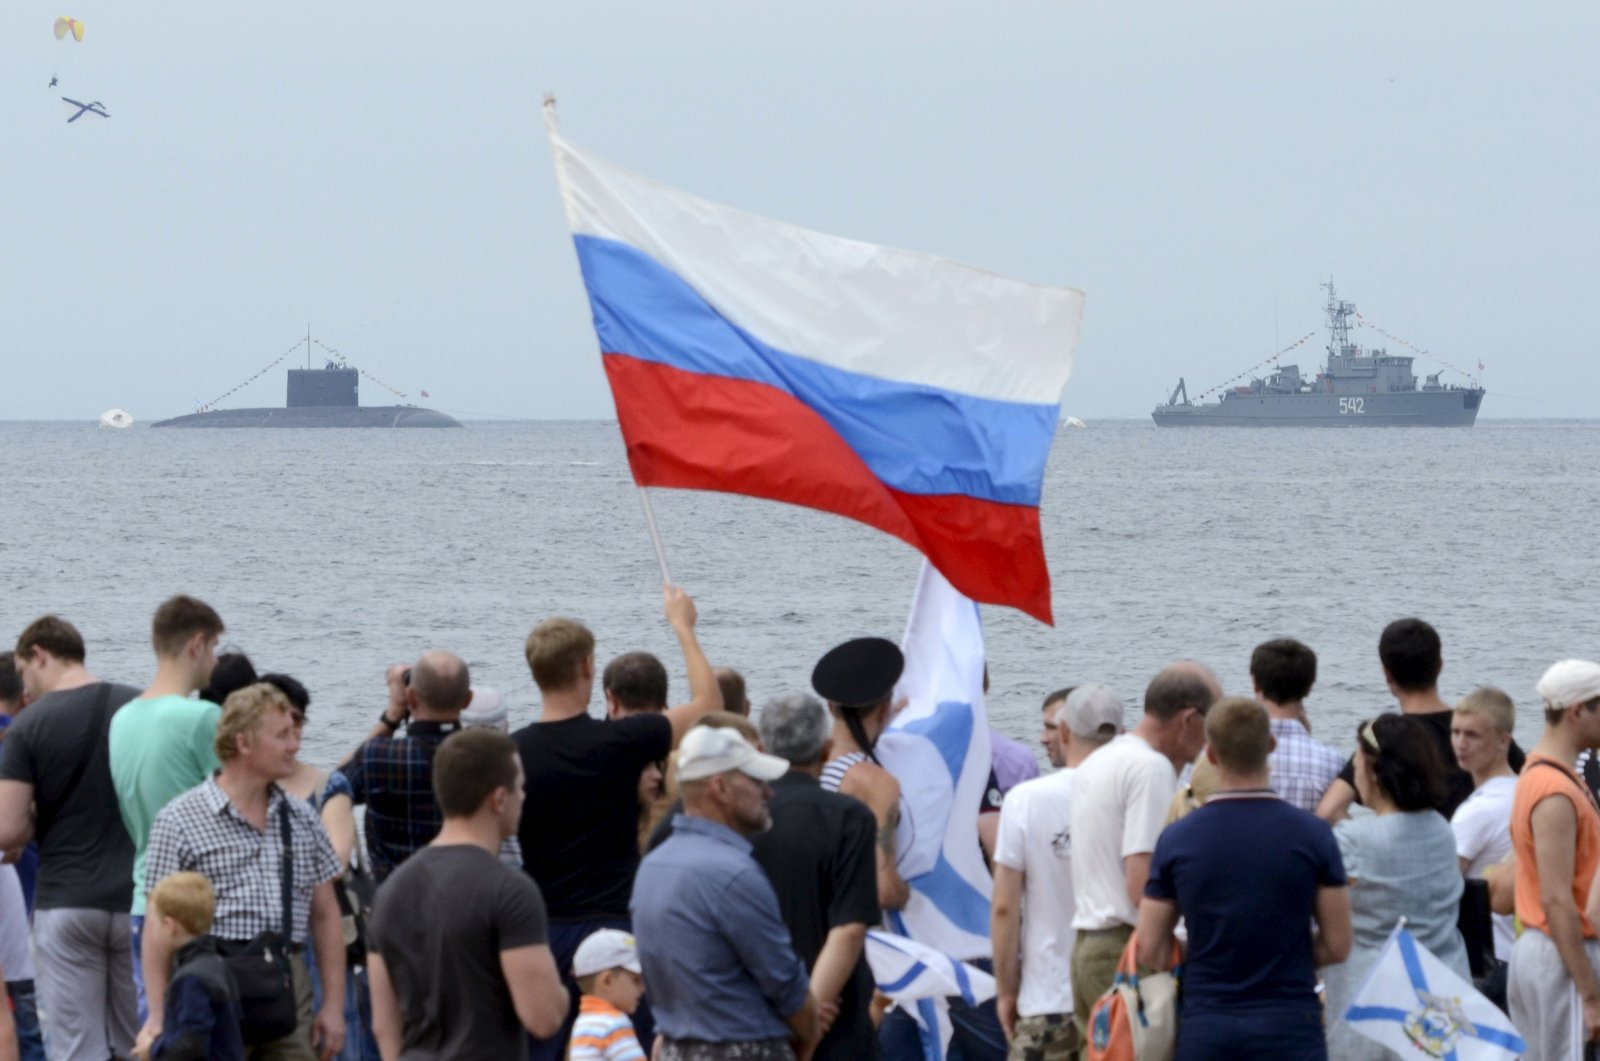 People gather to watch celebrations for Navy Day, with a Russian warship and a submarine seen in the background, in the far eastern city of Vladivostok, Russia, July 26, 2015. (Reuters Photo)